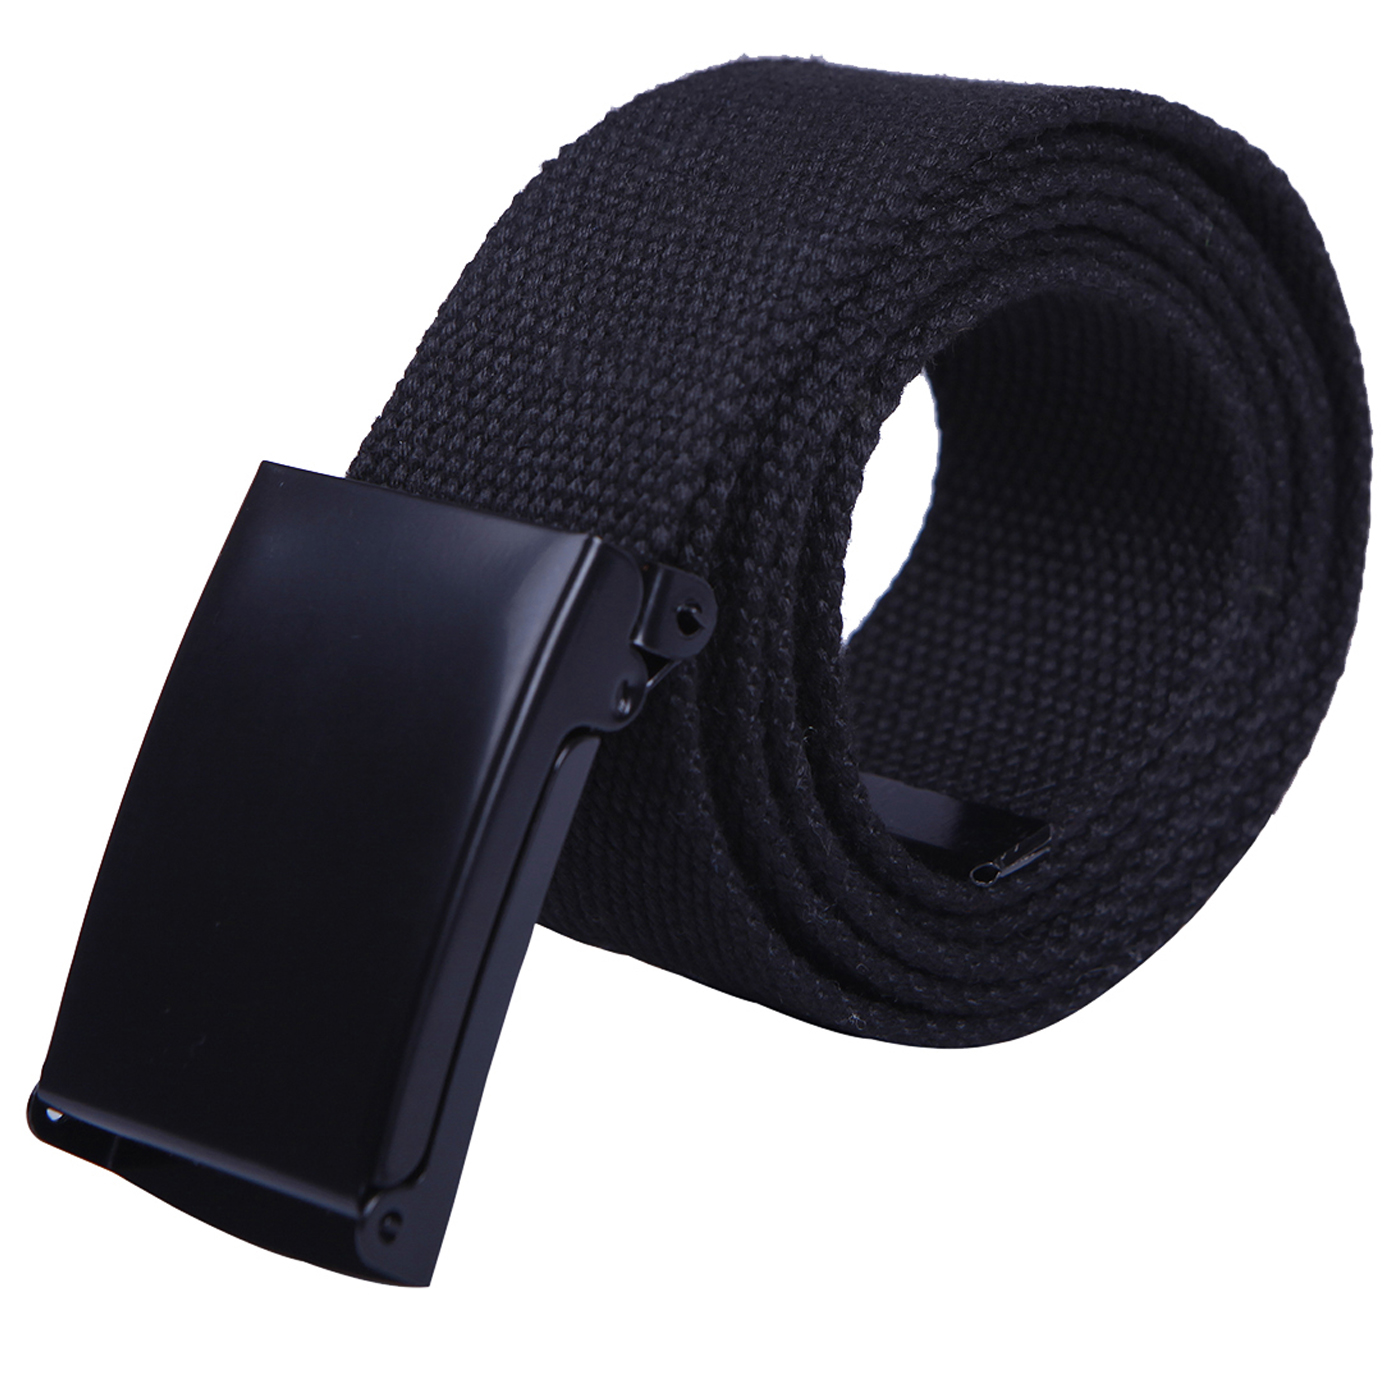 "HDE Mens Military Web Belt Canvas Adjustable Style with Metal Buckle 50"" Long (Black)"